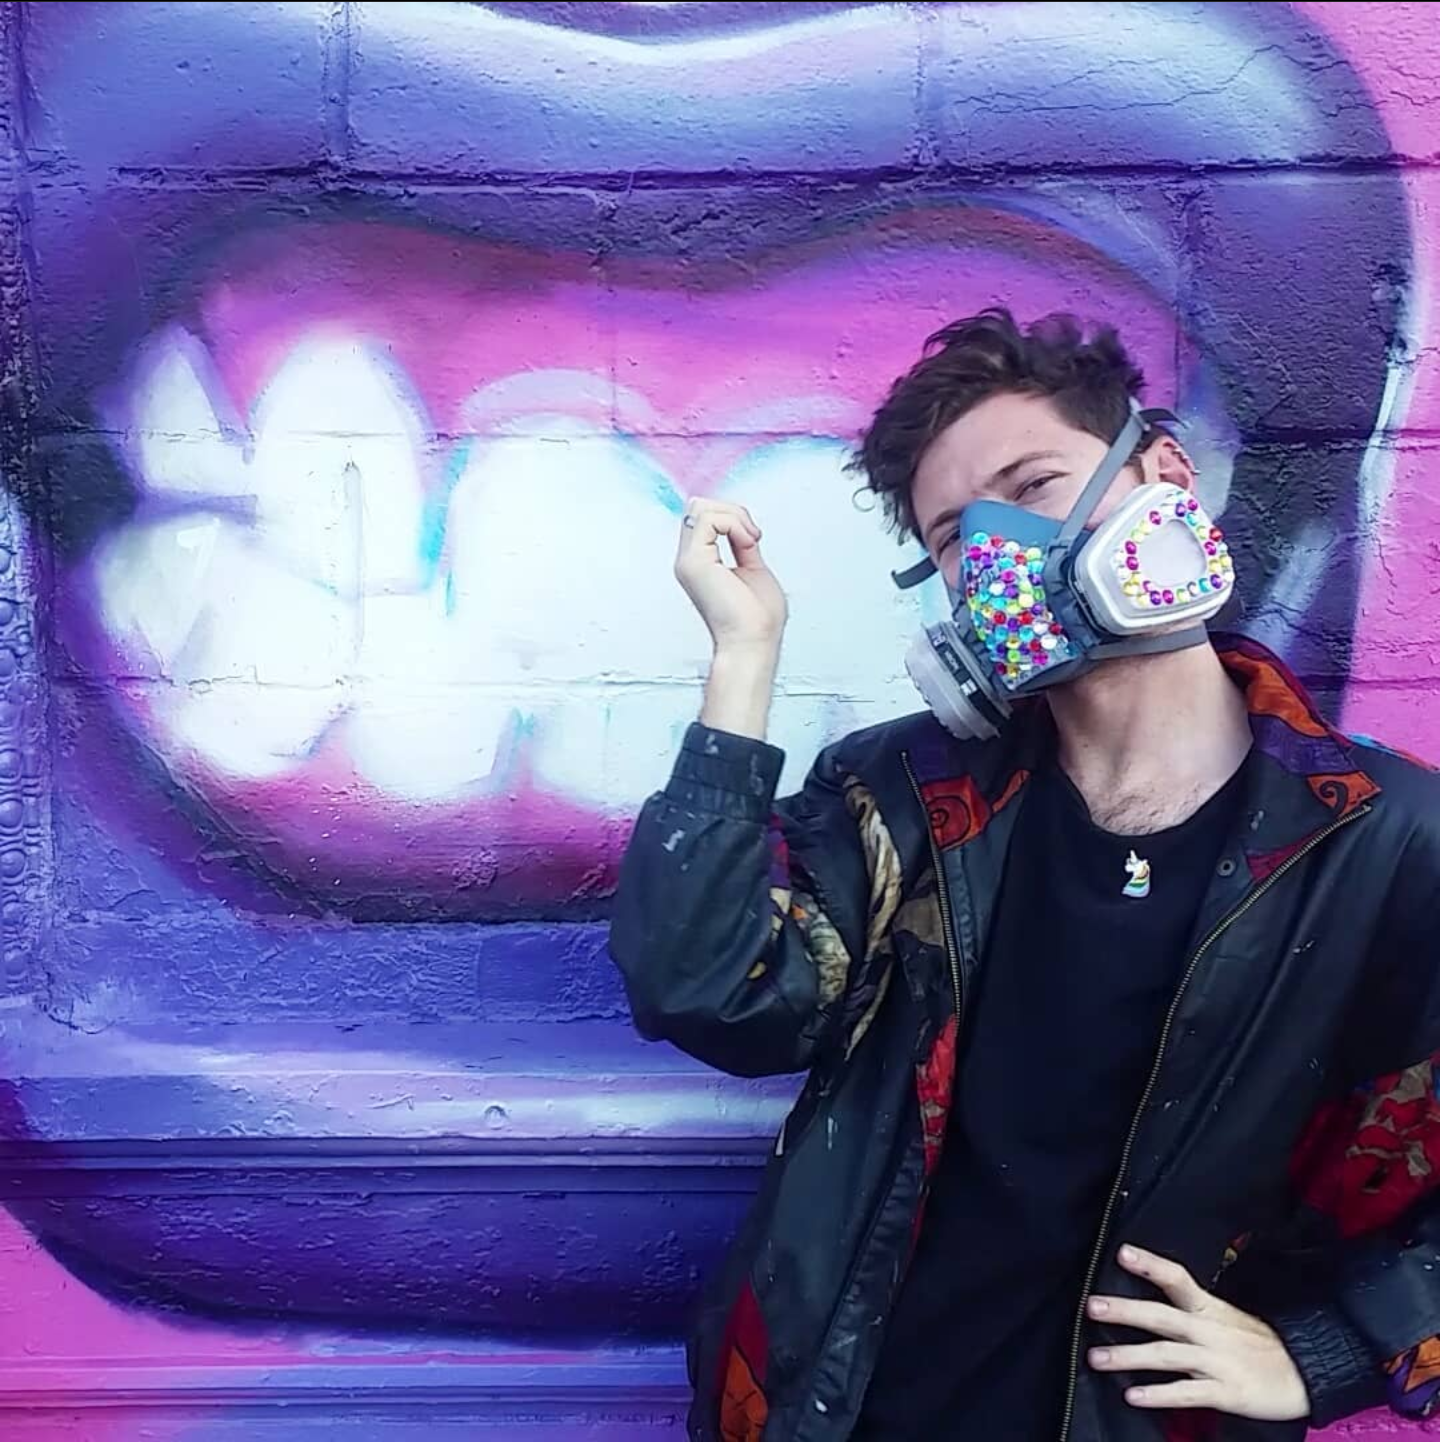 rhinestoned spray paint mask queer